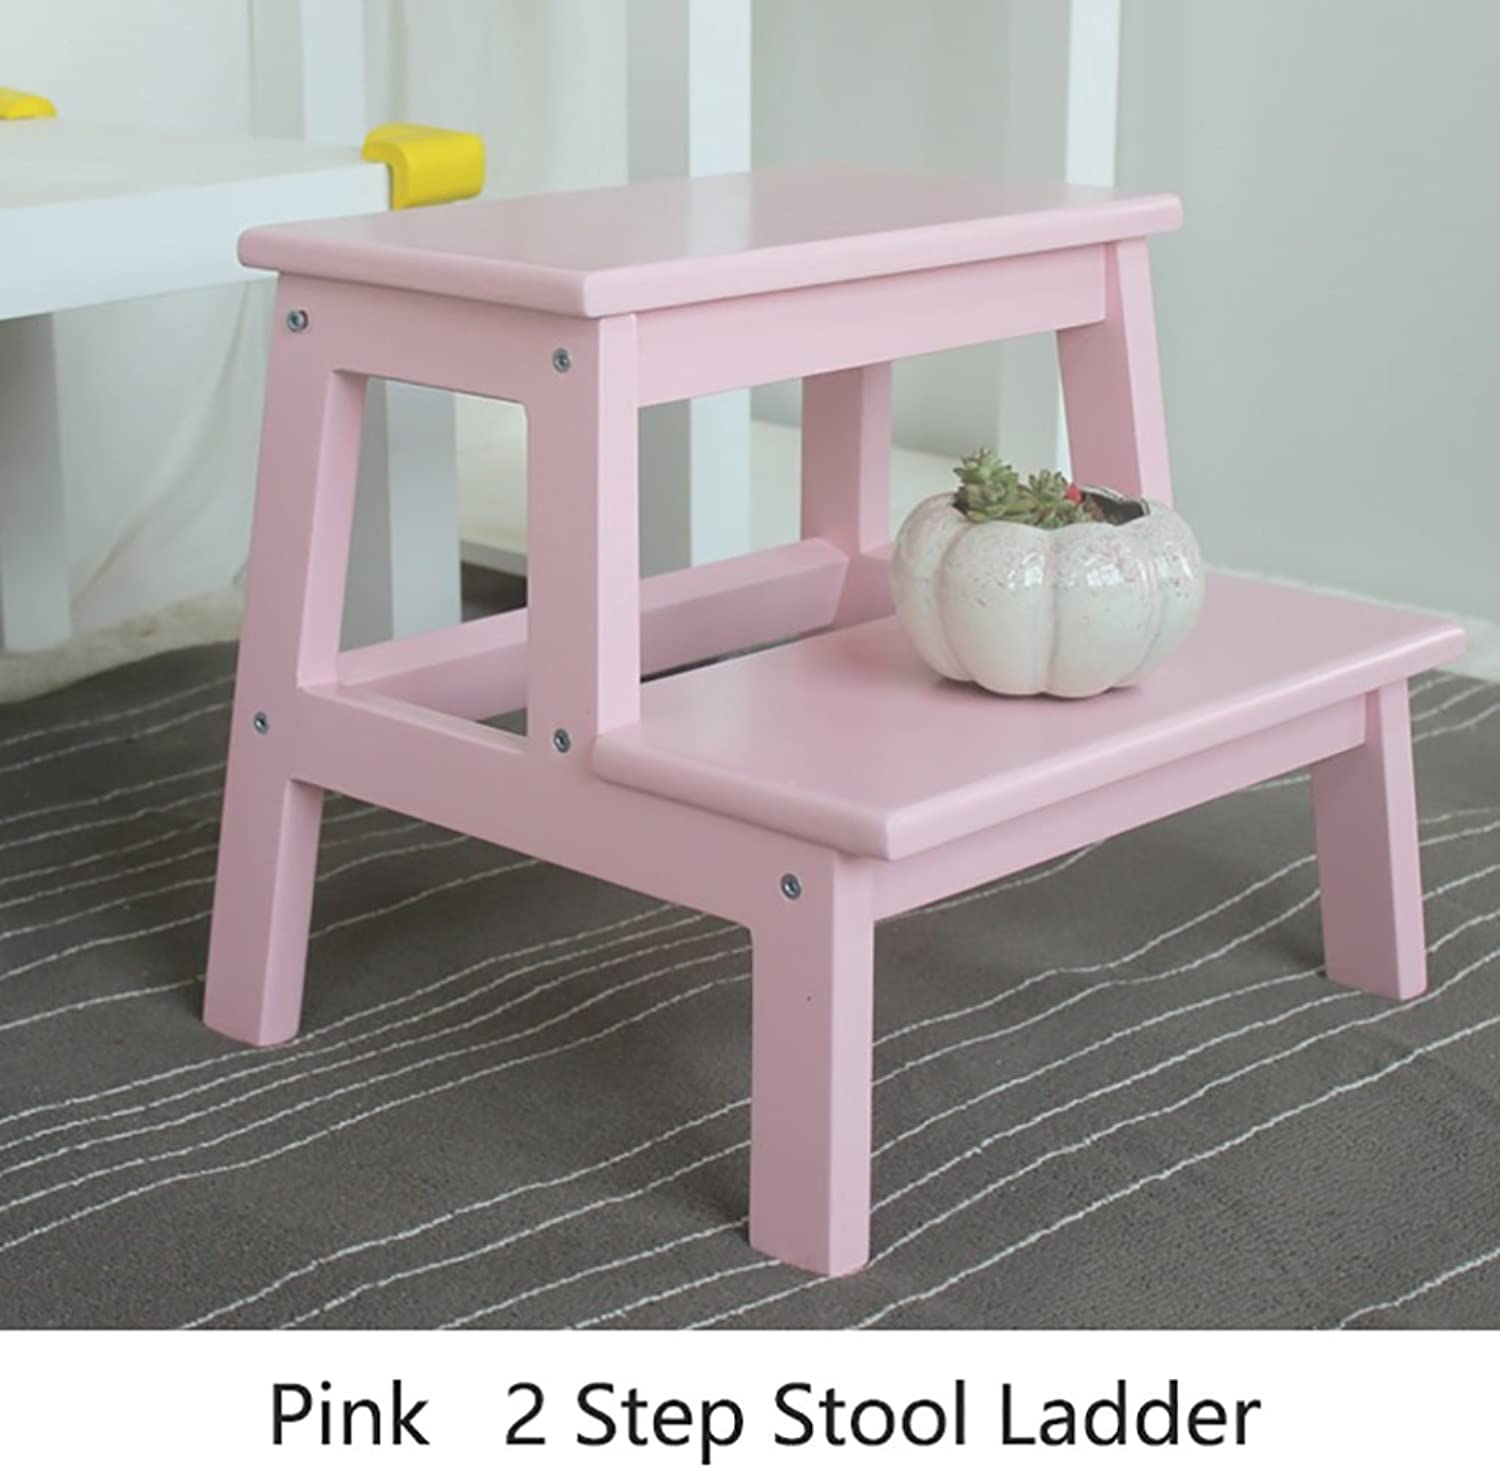 2 Step Stool Ladder for Kids Kitchen Wood Ladders Small Foot Stools Indoor Portable shoes Bench Flower Rack Storage Shelf (color   Pink, Size   39.5  35  35cm)